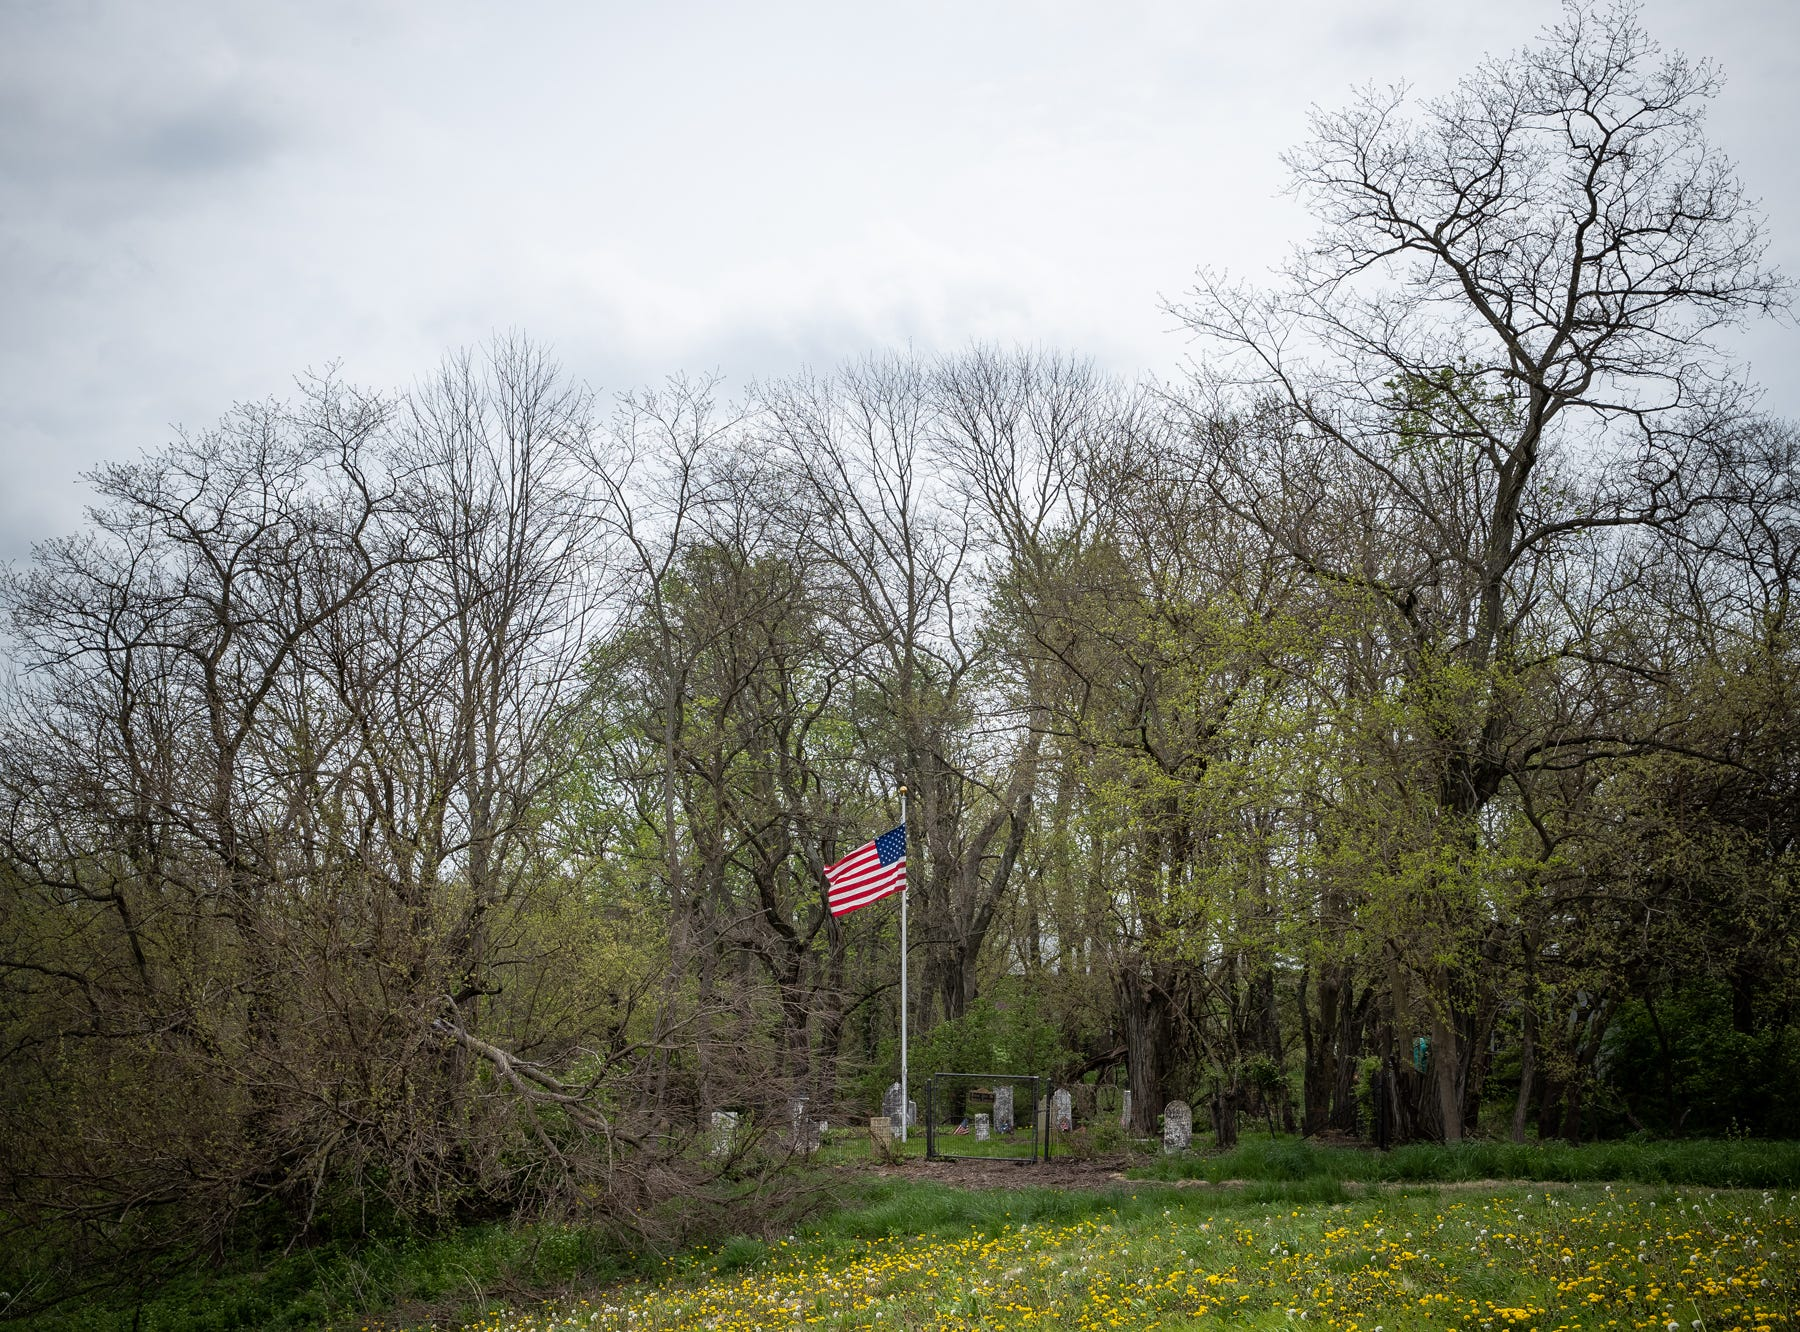 The Rubush-Joyce or Sampson Cemetery, located in southern Marion County on Wednesday, May 1, 2019. The plot of land where the cemetery sits was settled by Alexander Joyce in the 1830s. Family members from multiple families are buried in the site, including Joyce.